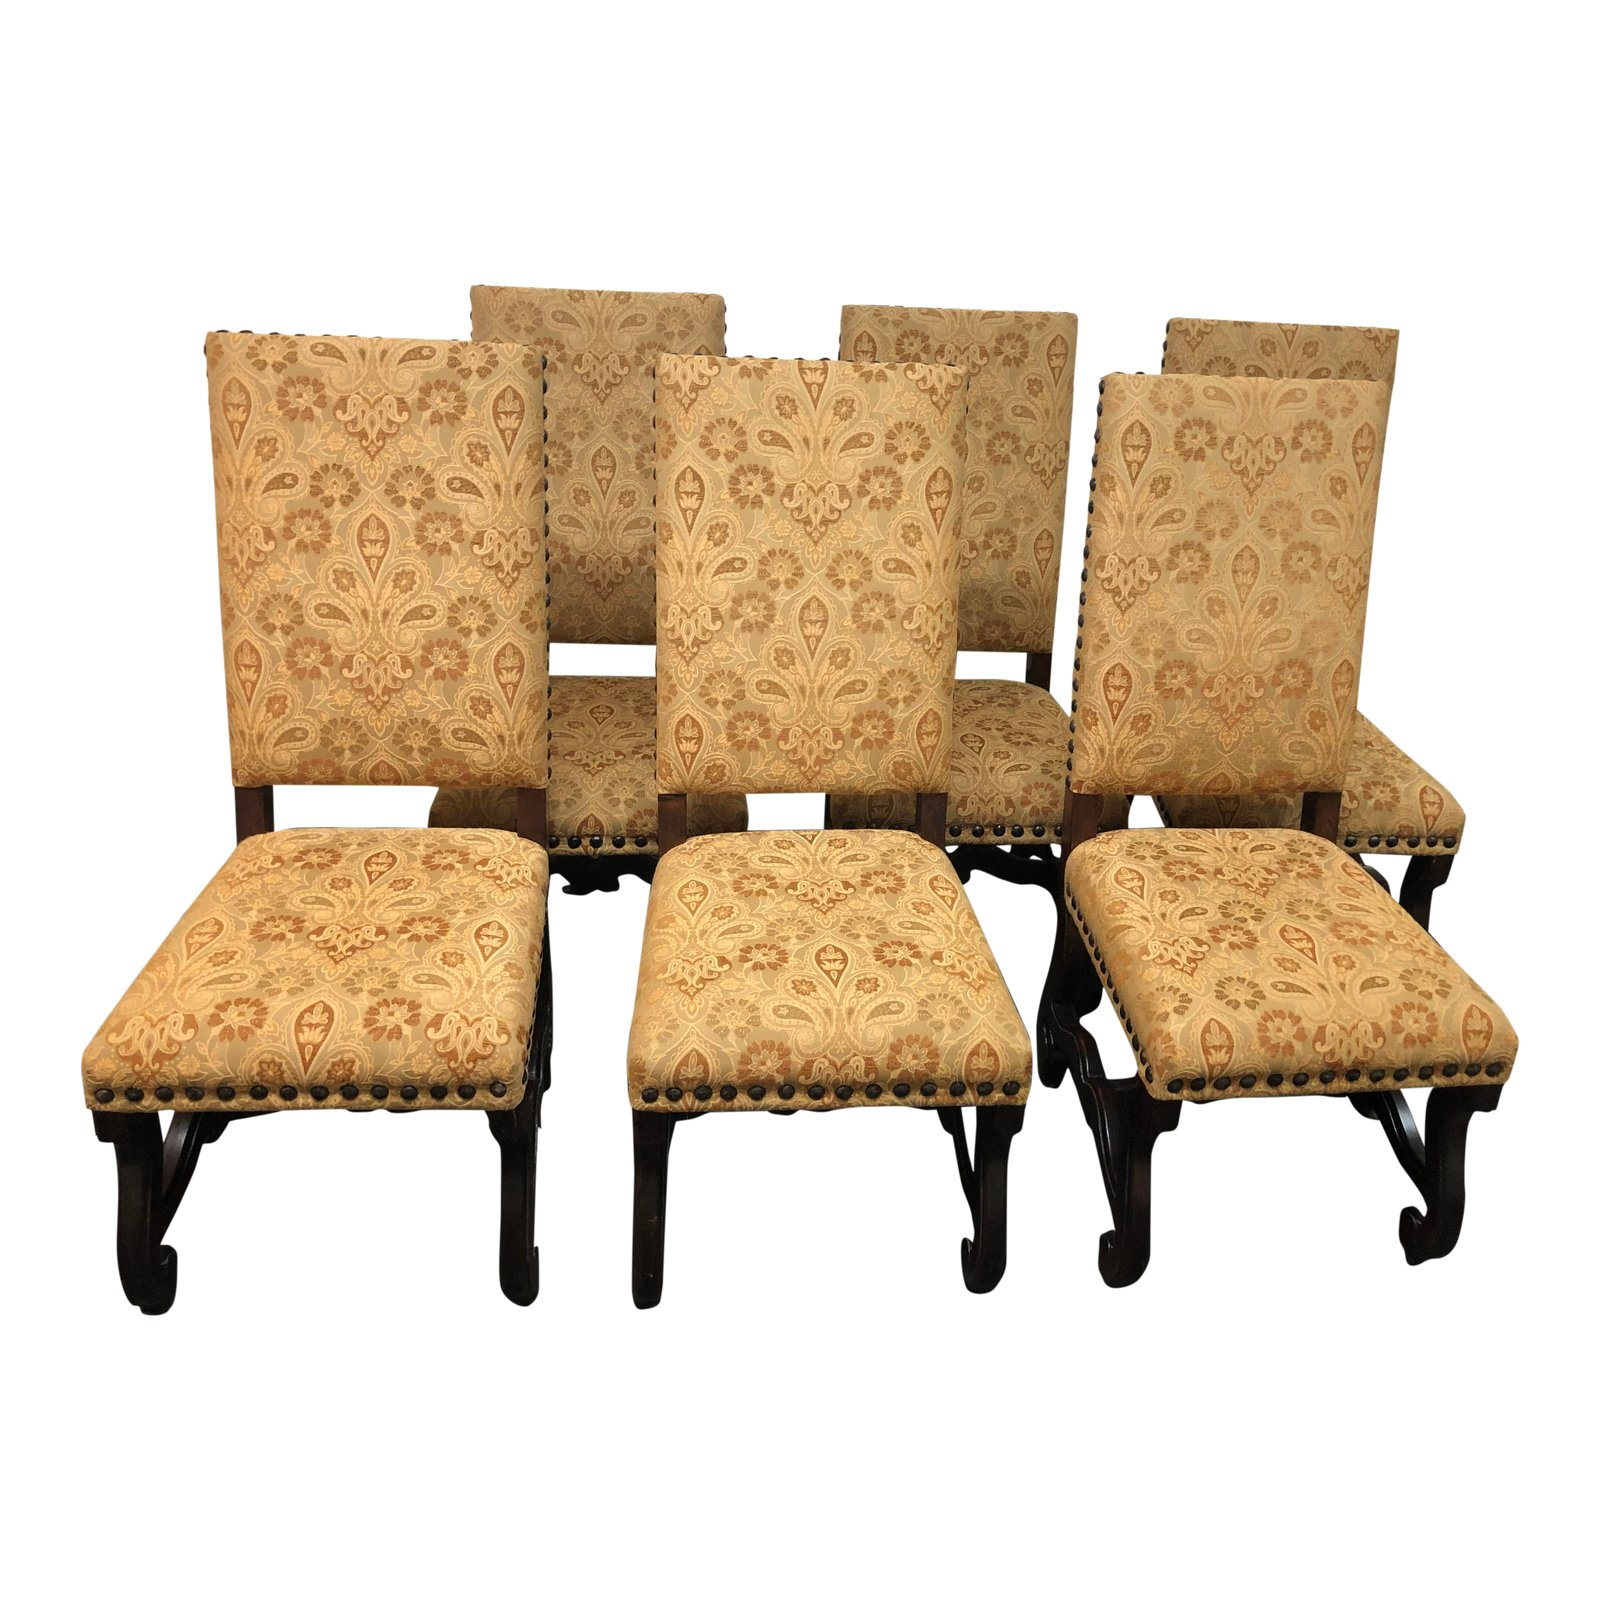 Spanish Style Dining Room Furniture: Spanish Revival Dining Room Chairs, Set Of Six